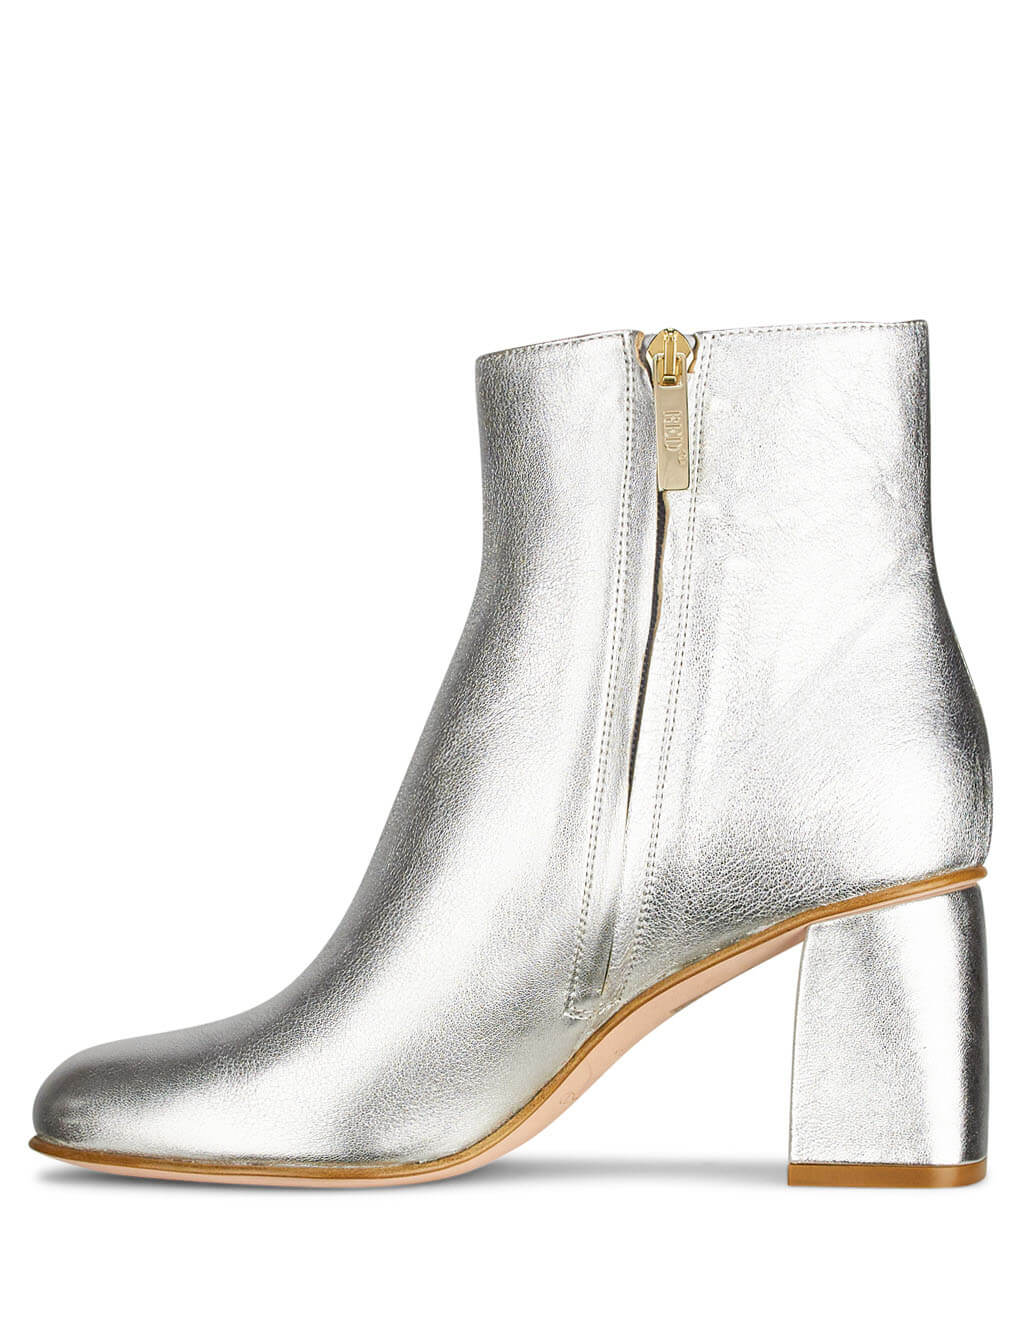 Red Valentino Metallic Silver Leather Booties SQ2S0C76BCGD00